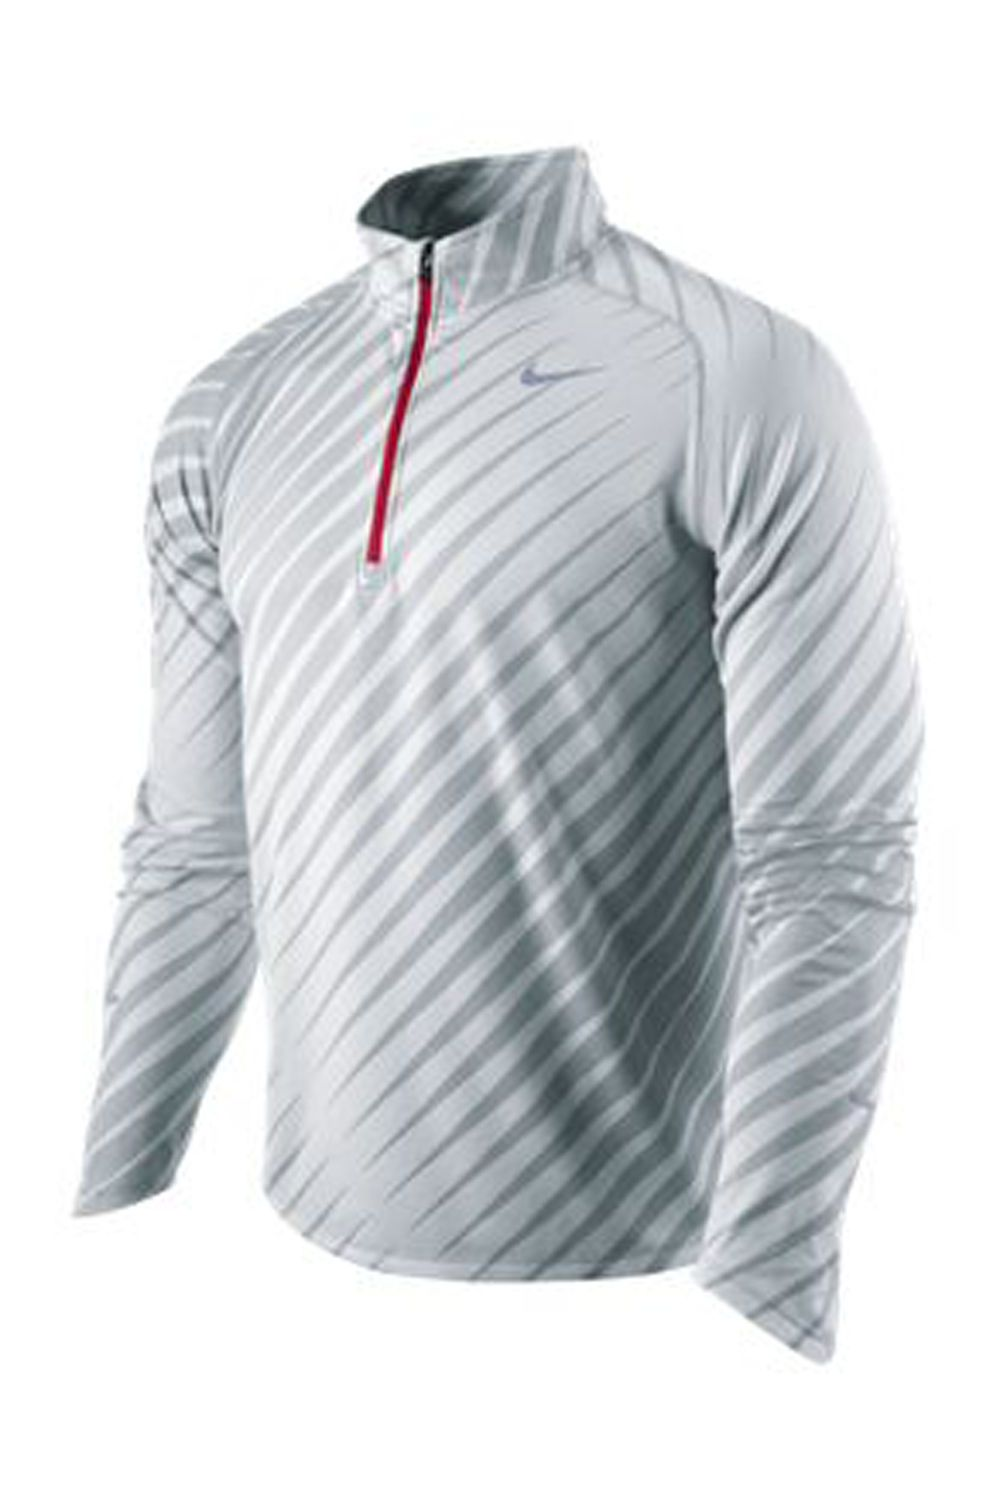 Nike Element Jacquard Men's Running Top